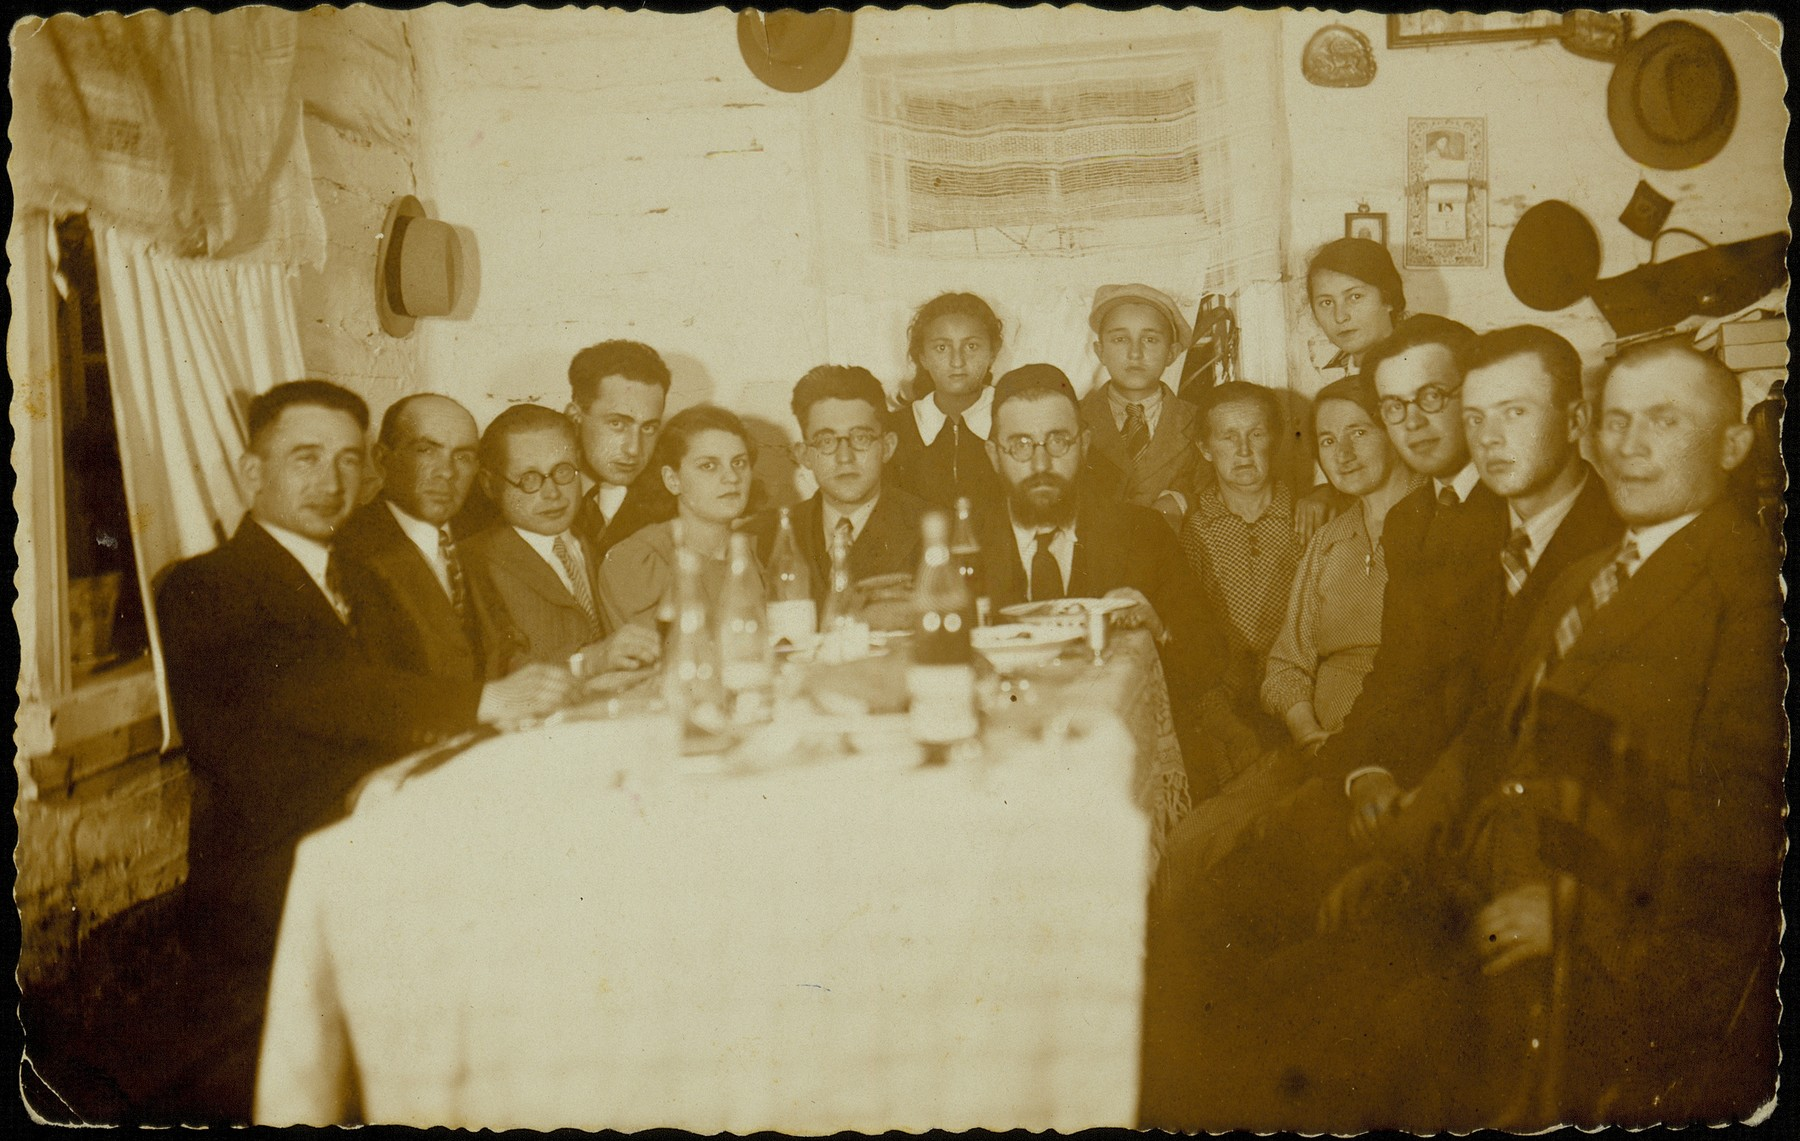 Family party at the home of Reb Israel Yossef and Taibe-Edl (Kabacznik) Hinski on the occasion of the departure of their son, Alexander Zisl Hinski, for Palestine.    Pictured standing in back from right to left are: Golda Braha, Avraham Yaakov and Hayya-Sheine Hinski.  Sitting around the table from right to left are: Gershon Koppelman, Shlomo Dubczanski, Yitzhak Matikanski, Hinda Levin, Taibe-Edl Hinski, Reb Israel Yossef Hinski, Alexander Zisl Hinski, Shmuel (last name unknown), unknown, Ephraim Karnewski, unknown and Mendl Politacki.  Hayya-Sheine Hinski died a natural death during the summer of 1941.  Shlomo Dubczanski and the family of Reb Israel Yossef Hinski (apart from Alexander Zisl) were killed by the Germans during the September 1941 mass shooting action in Eisiskes. Yitzhak Matikanski was killed in Majdanek; Ephraim Karnewski died while hiding in the forest.  The fate of the others is unknown.